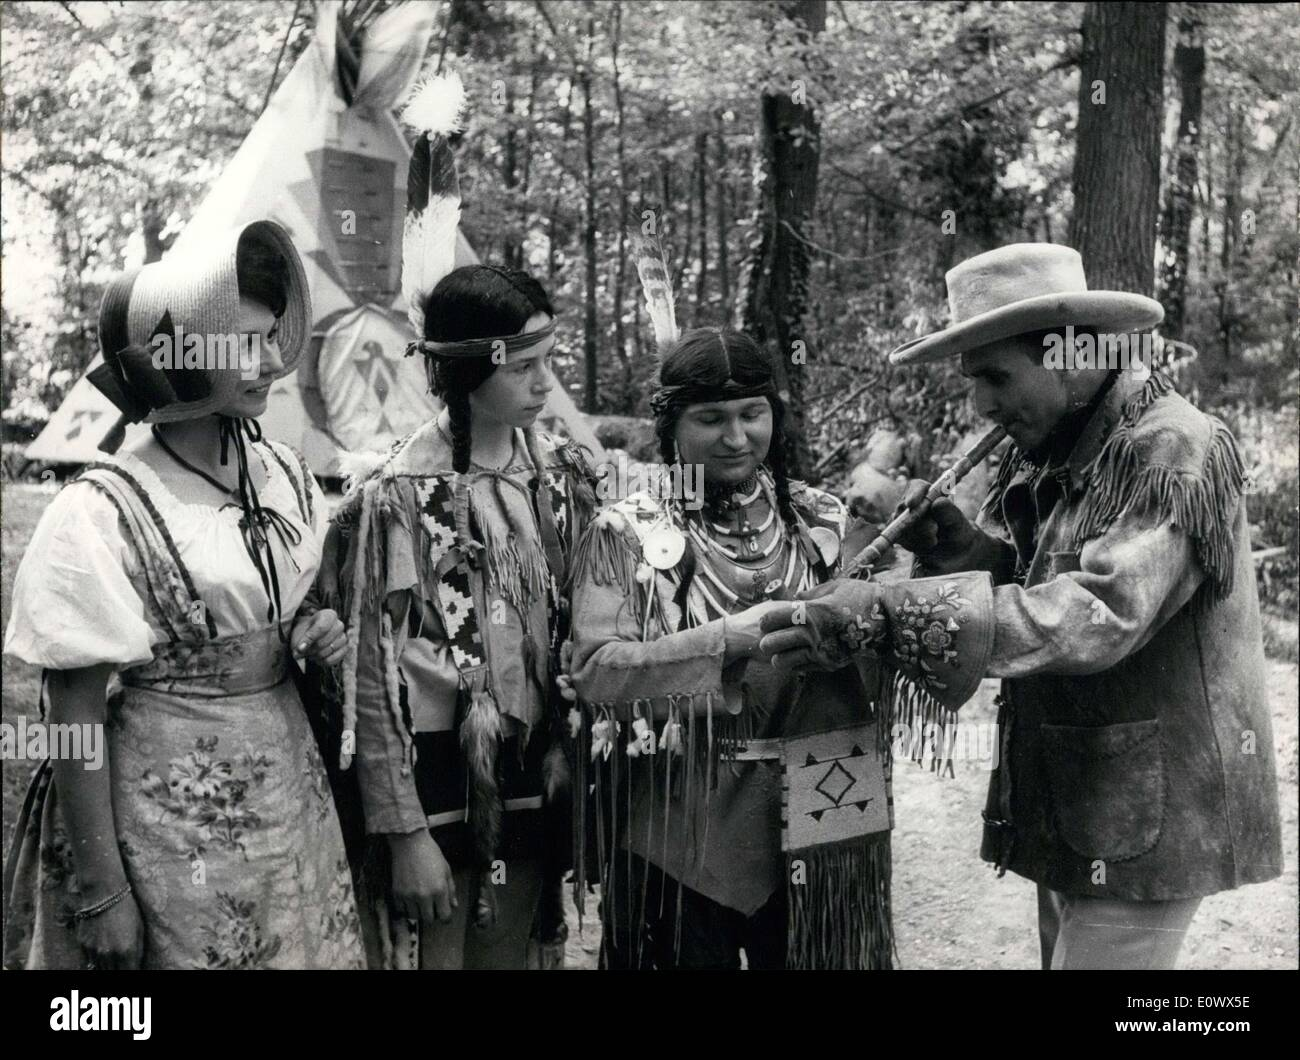 May 16, 1964 - Cowboys and Indians in France - Stock Image